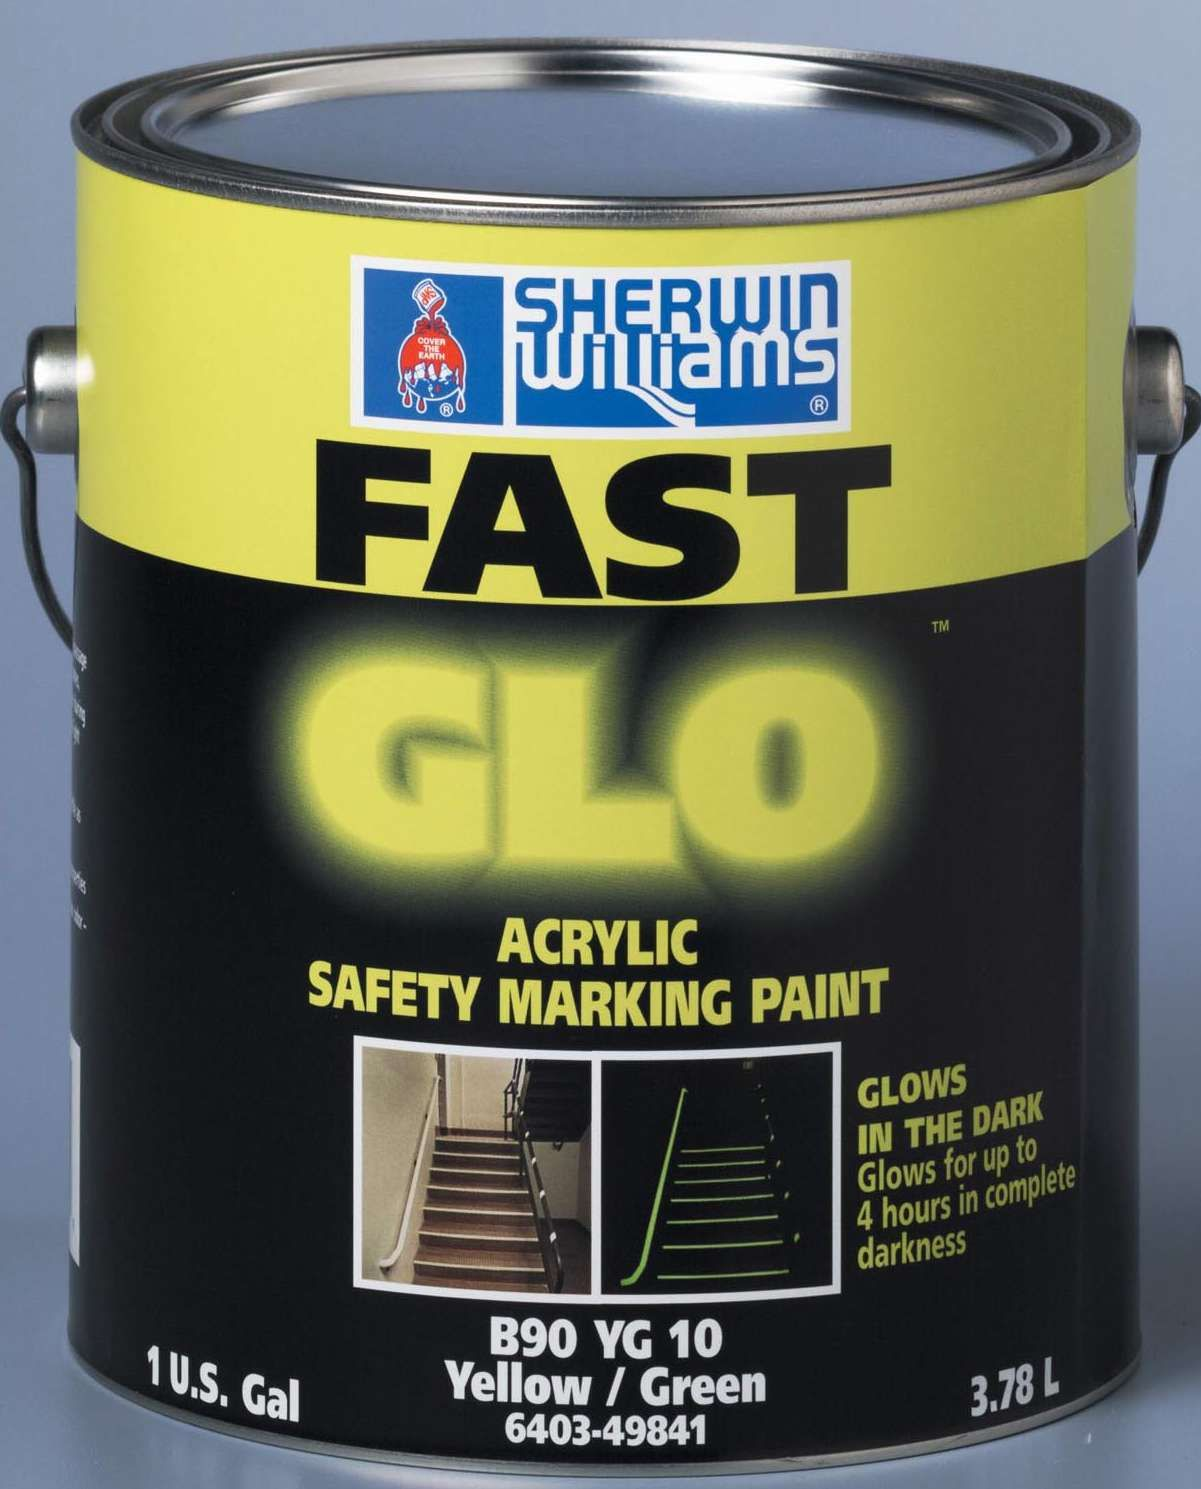 Exterior Glow Paint Paint glows in the dark for 4 hours